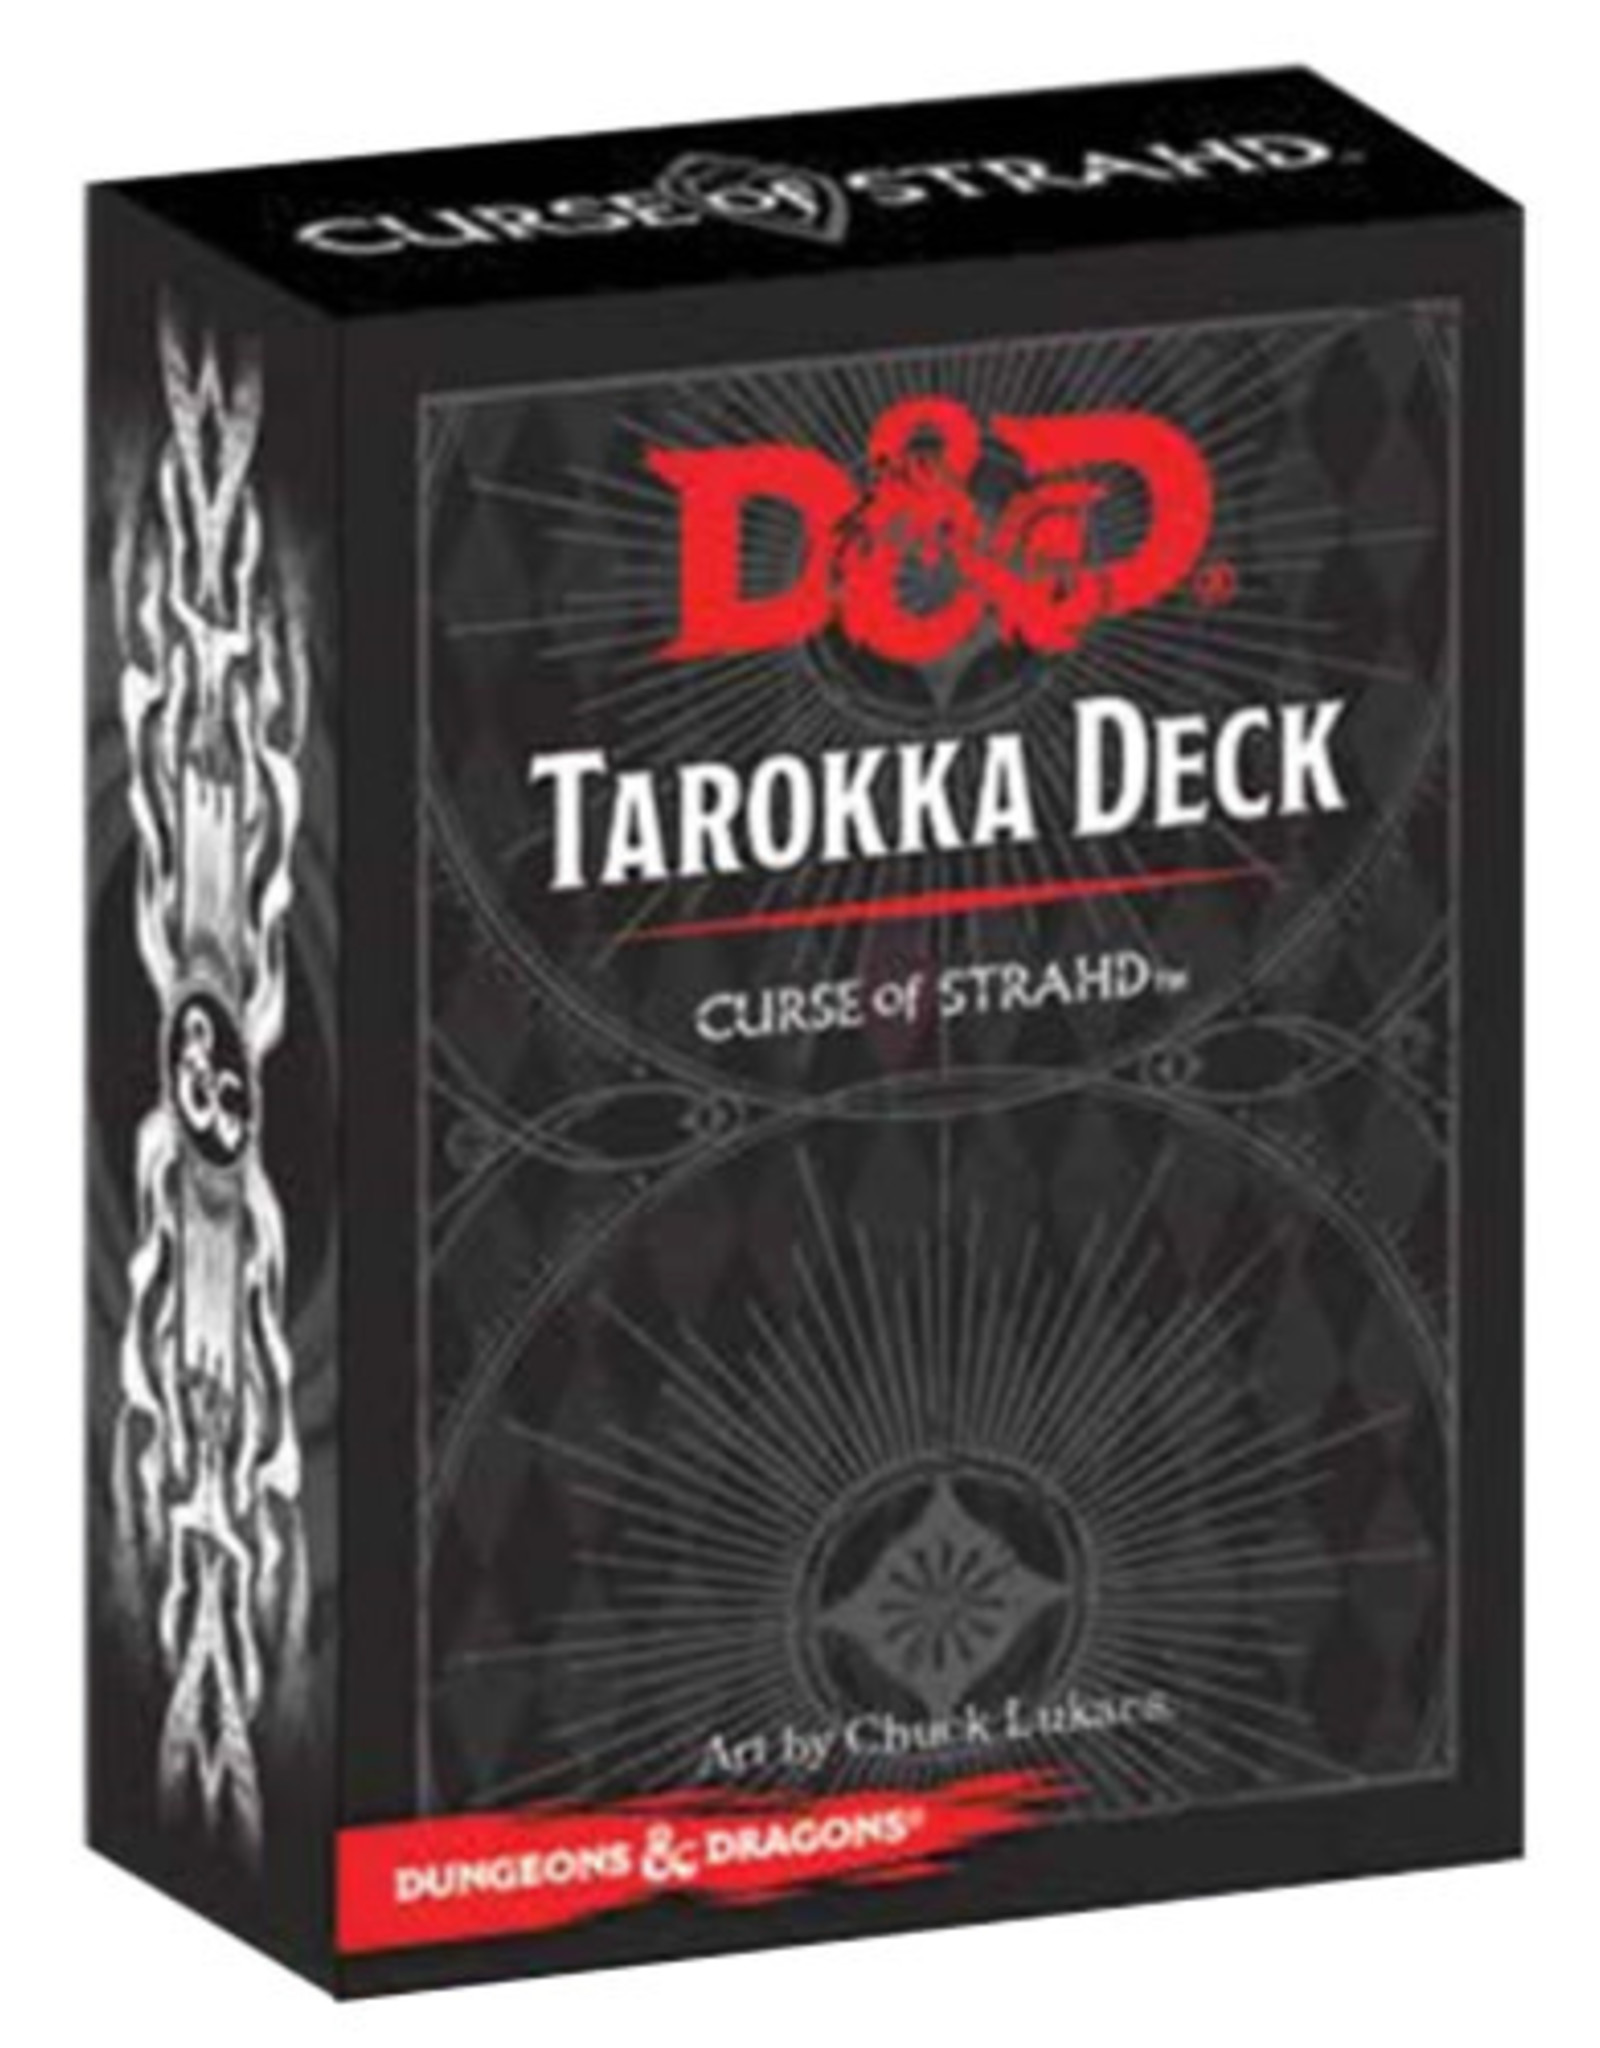 Gale Force 9 Dungeons And Dragons Next: Curse Of Strahd Tarokka Deck